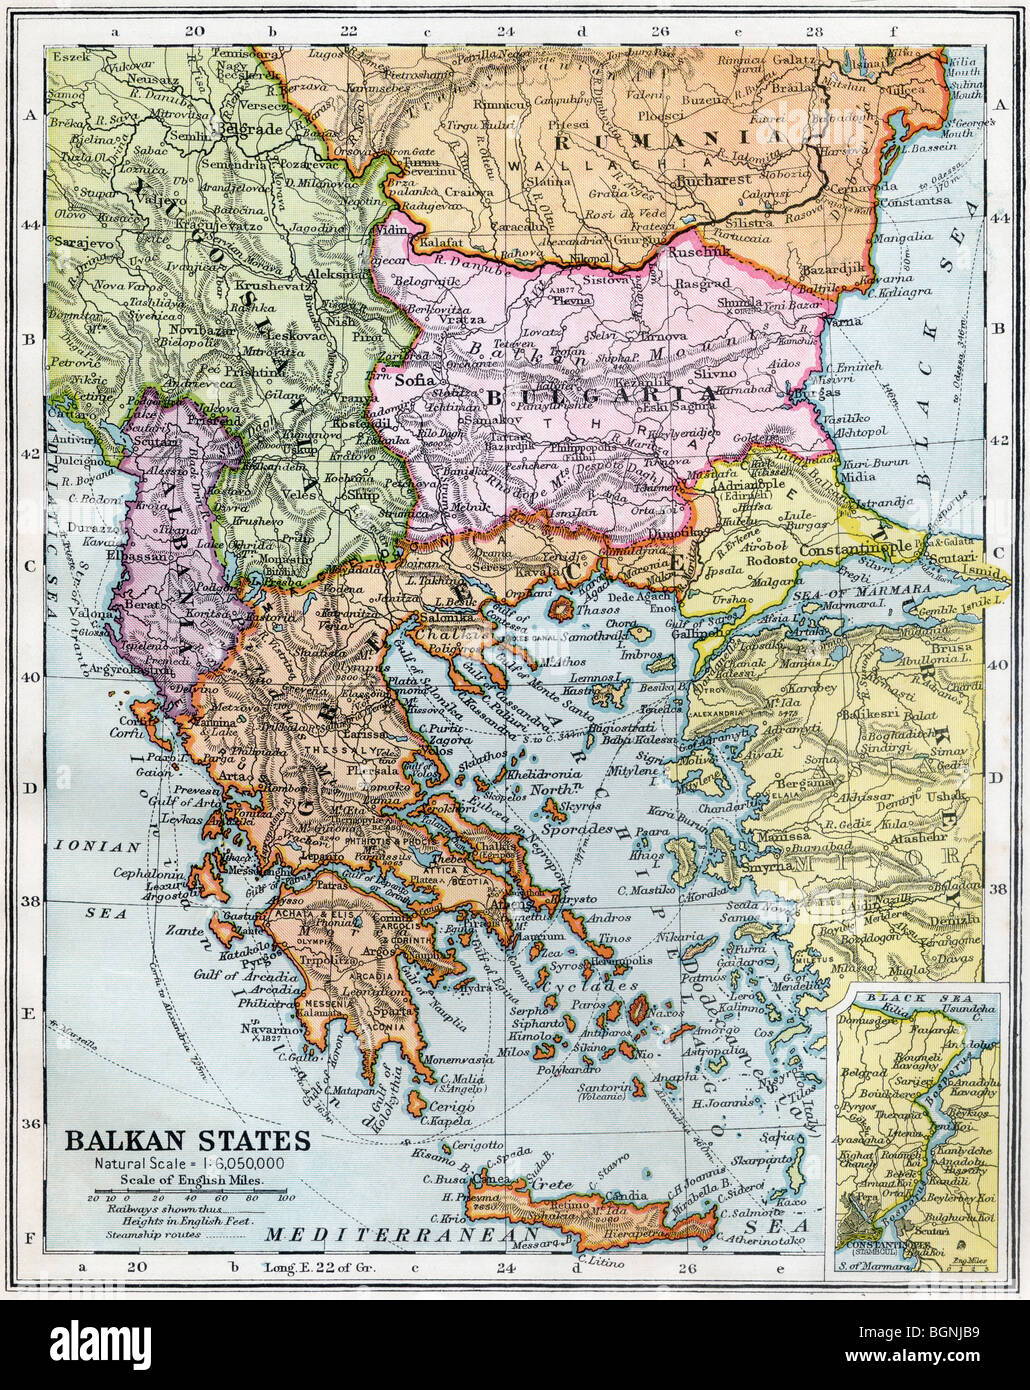 The Balkan States between the First and Second World Wars. - Stock Image